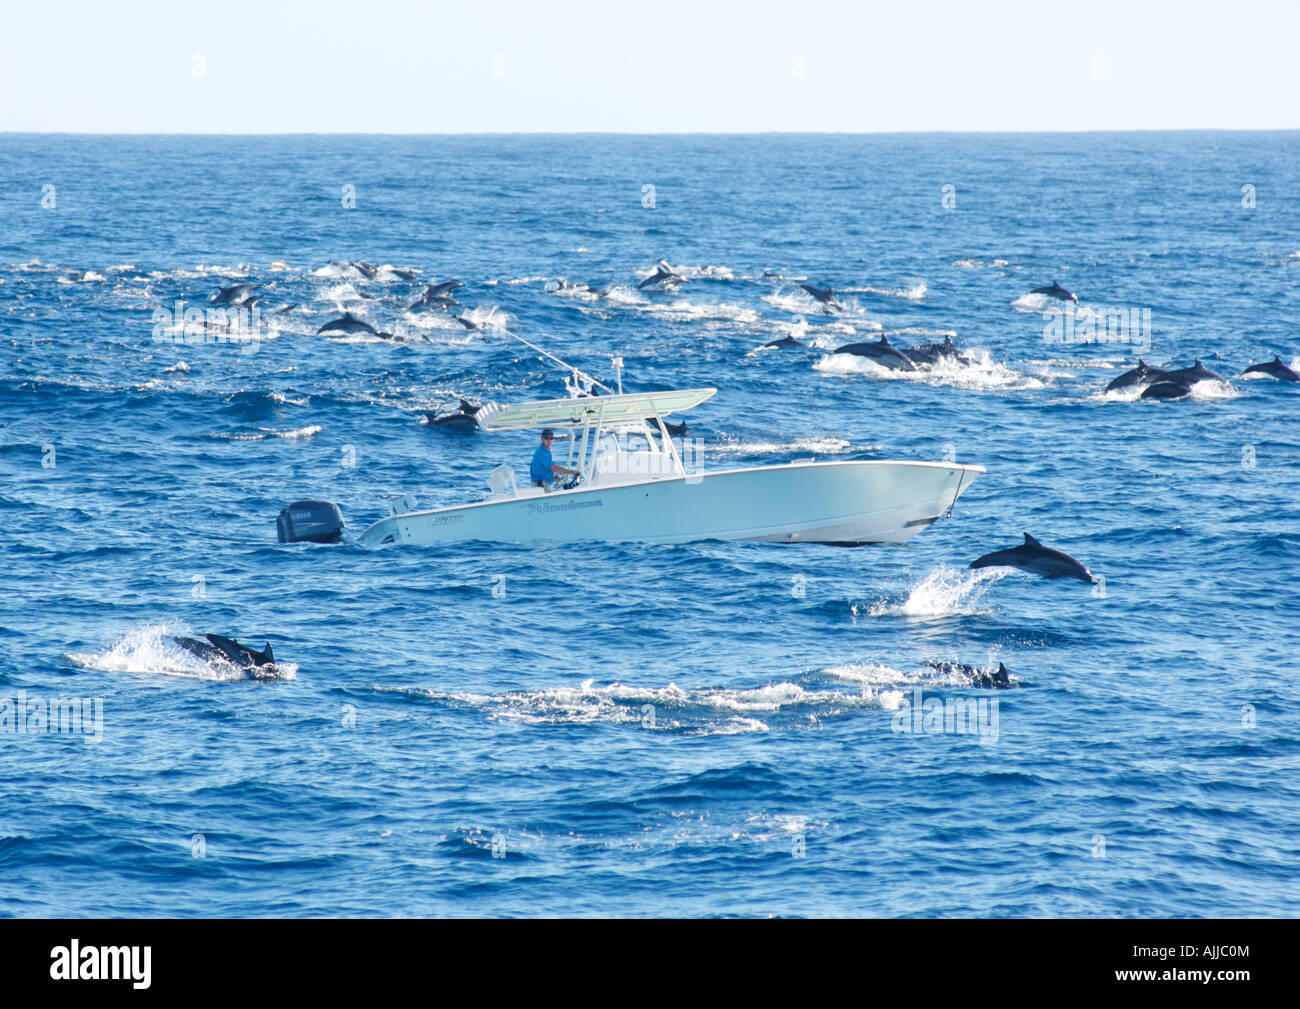 a huge pod of dolphins suround a 31 foot sport fishing boat with one man in it